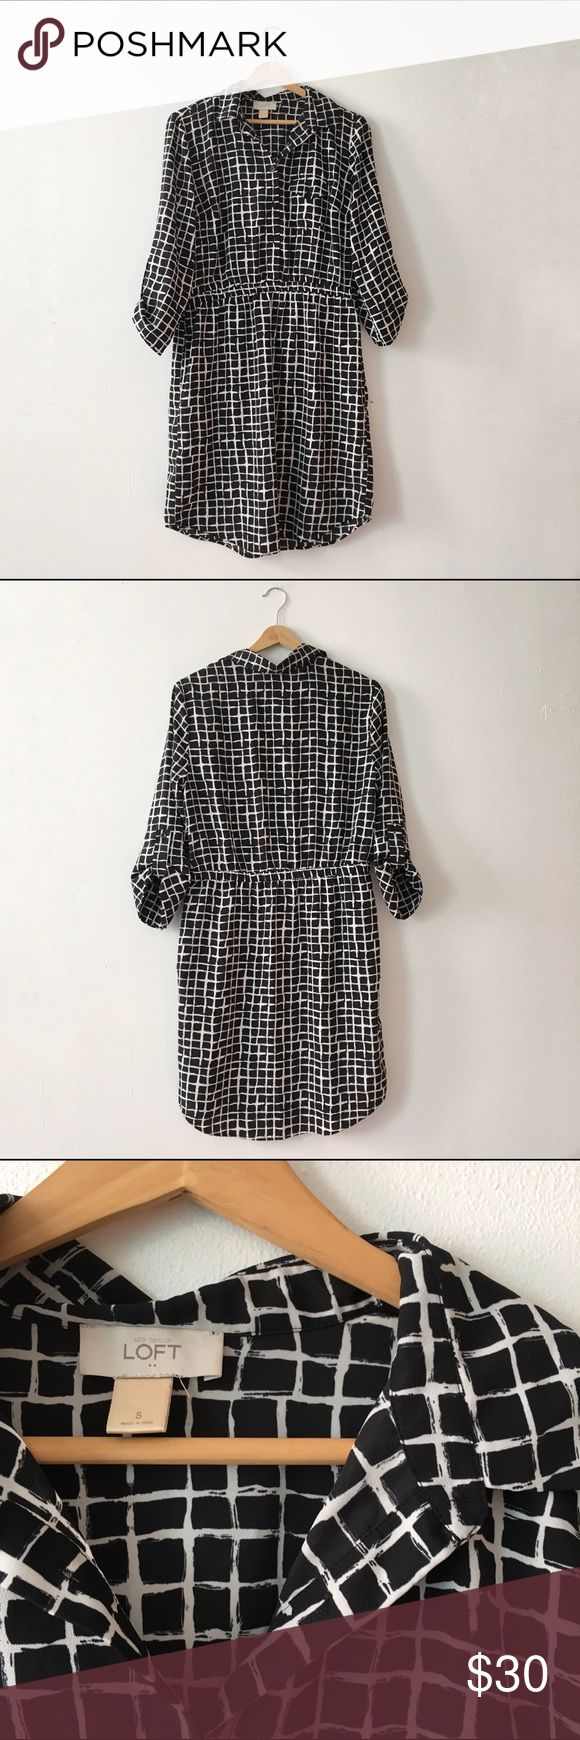 Selling this Checkered Black & White Button-Down Dress on Poshmark! My username is: dive_co. #shopmycloset #poshmark #fashion #shopping #style #forsale #Ann Taylor #Dresses & Skirts